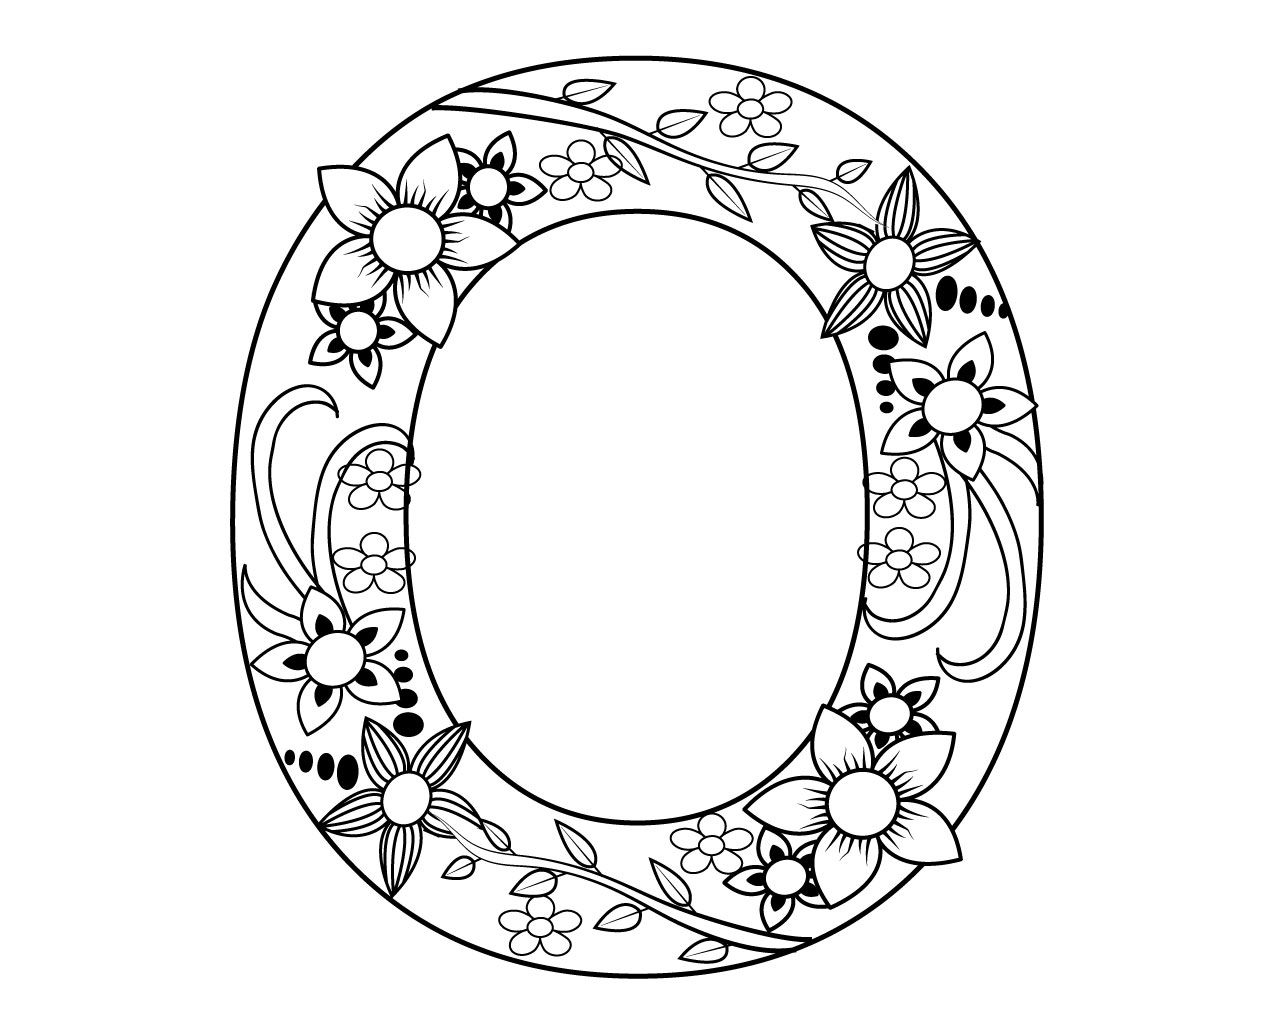 Printable Letter O Coloring Pages To Print